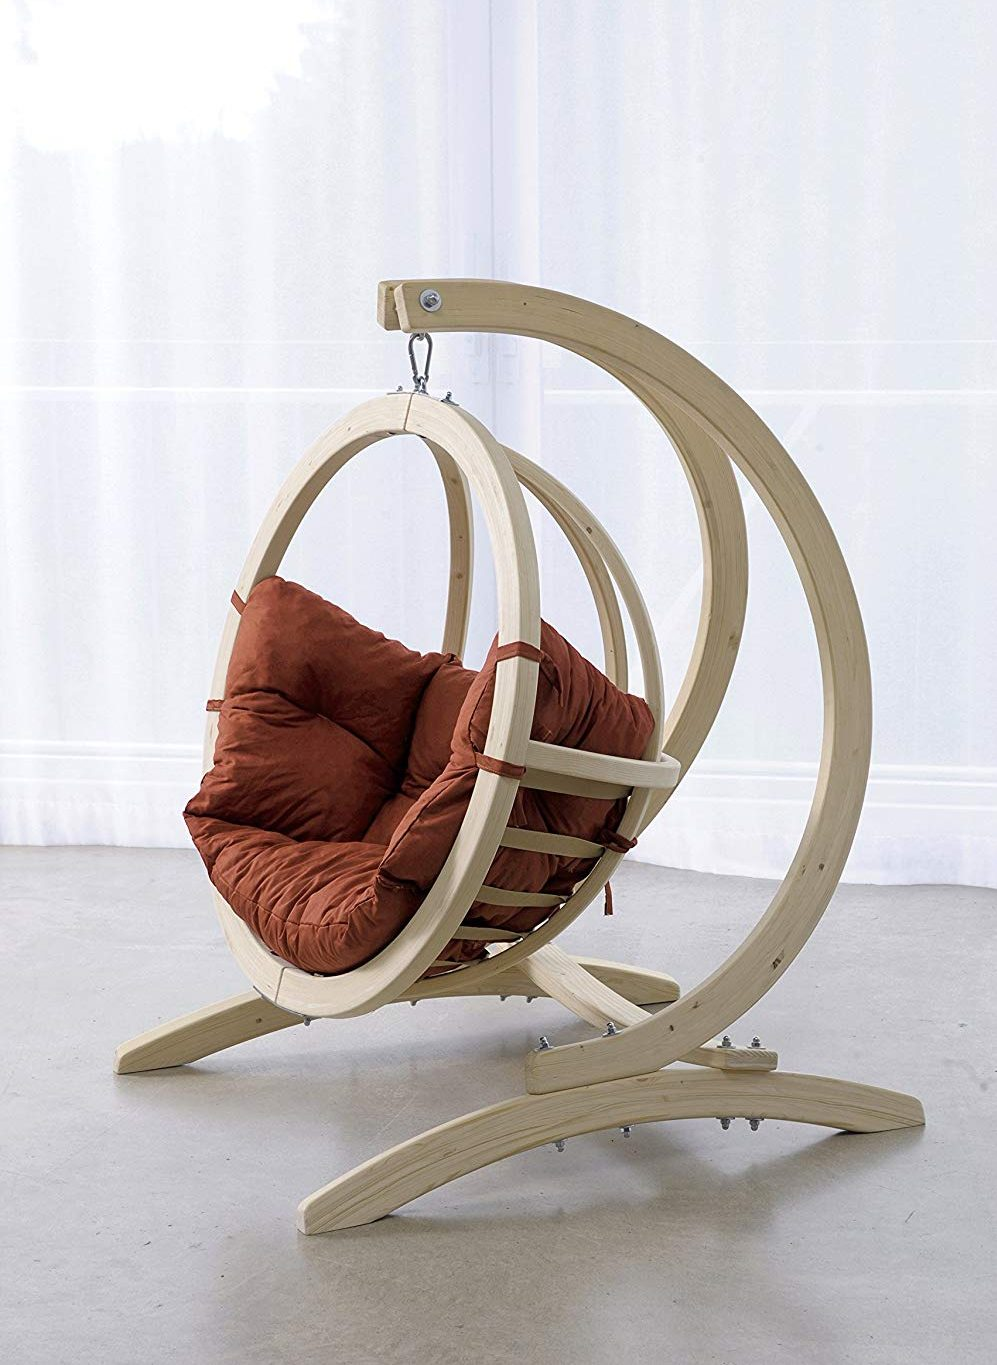 Phenomenal Globo Chair For Kids Treated Wood With Stand Bayer Of Maine Ncnpc Chair Design For Home Ncnpcorg